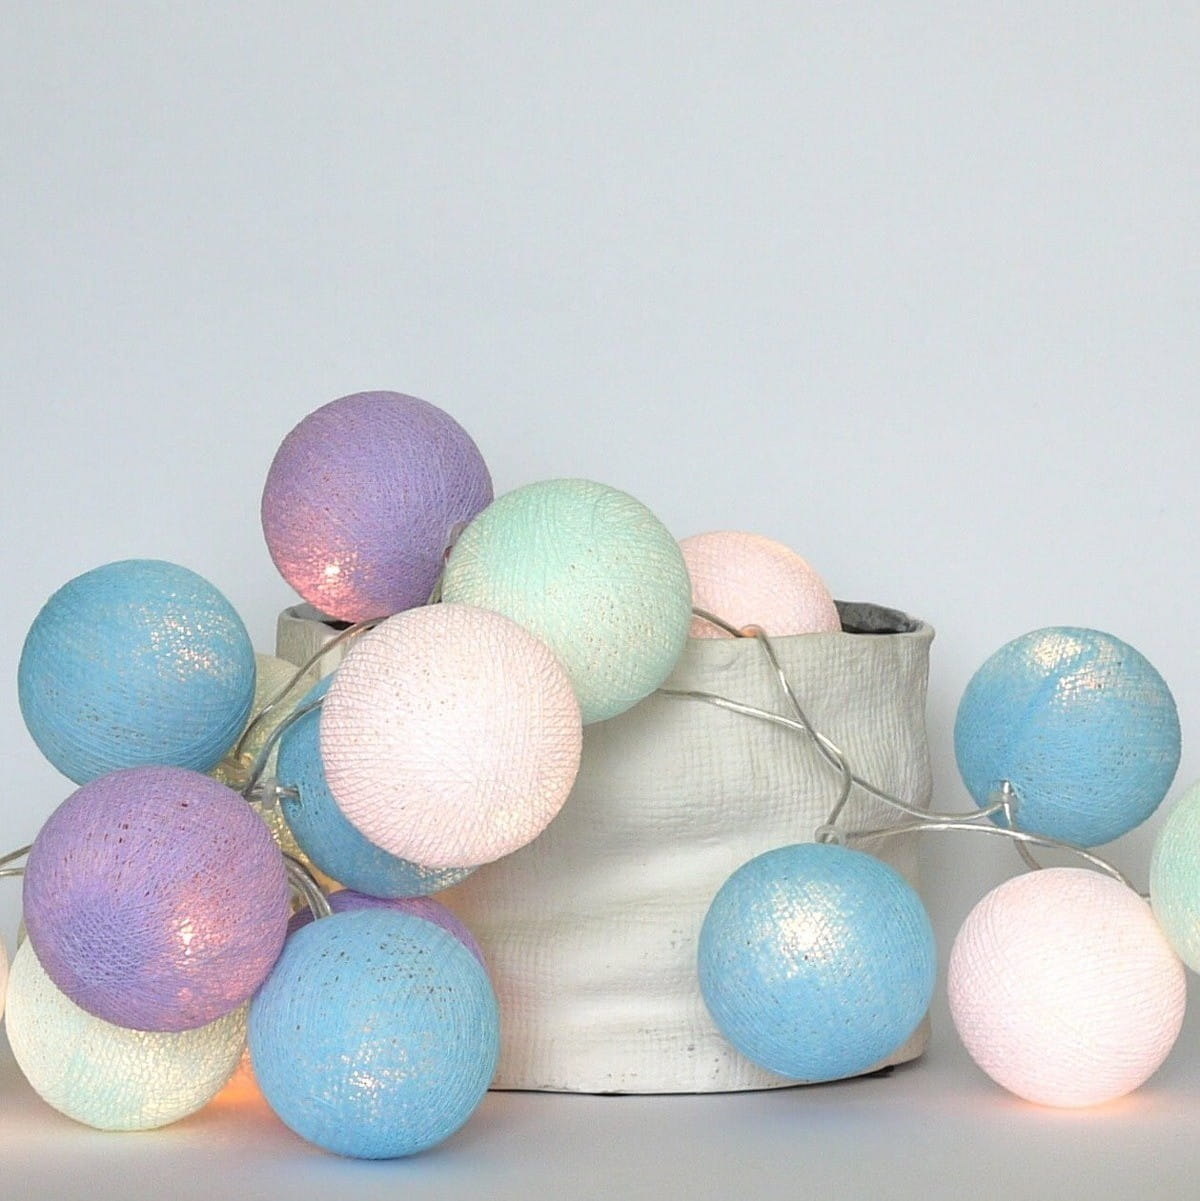 20 kul Baby Lavender Cotton Ball Lights